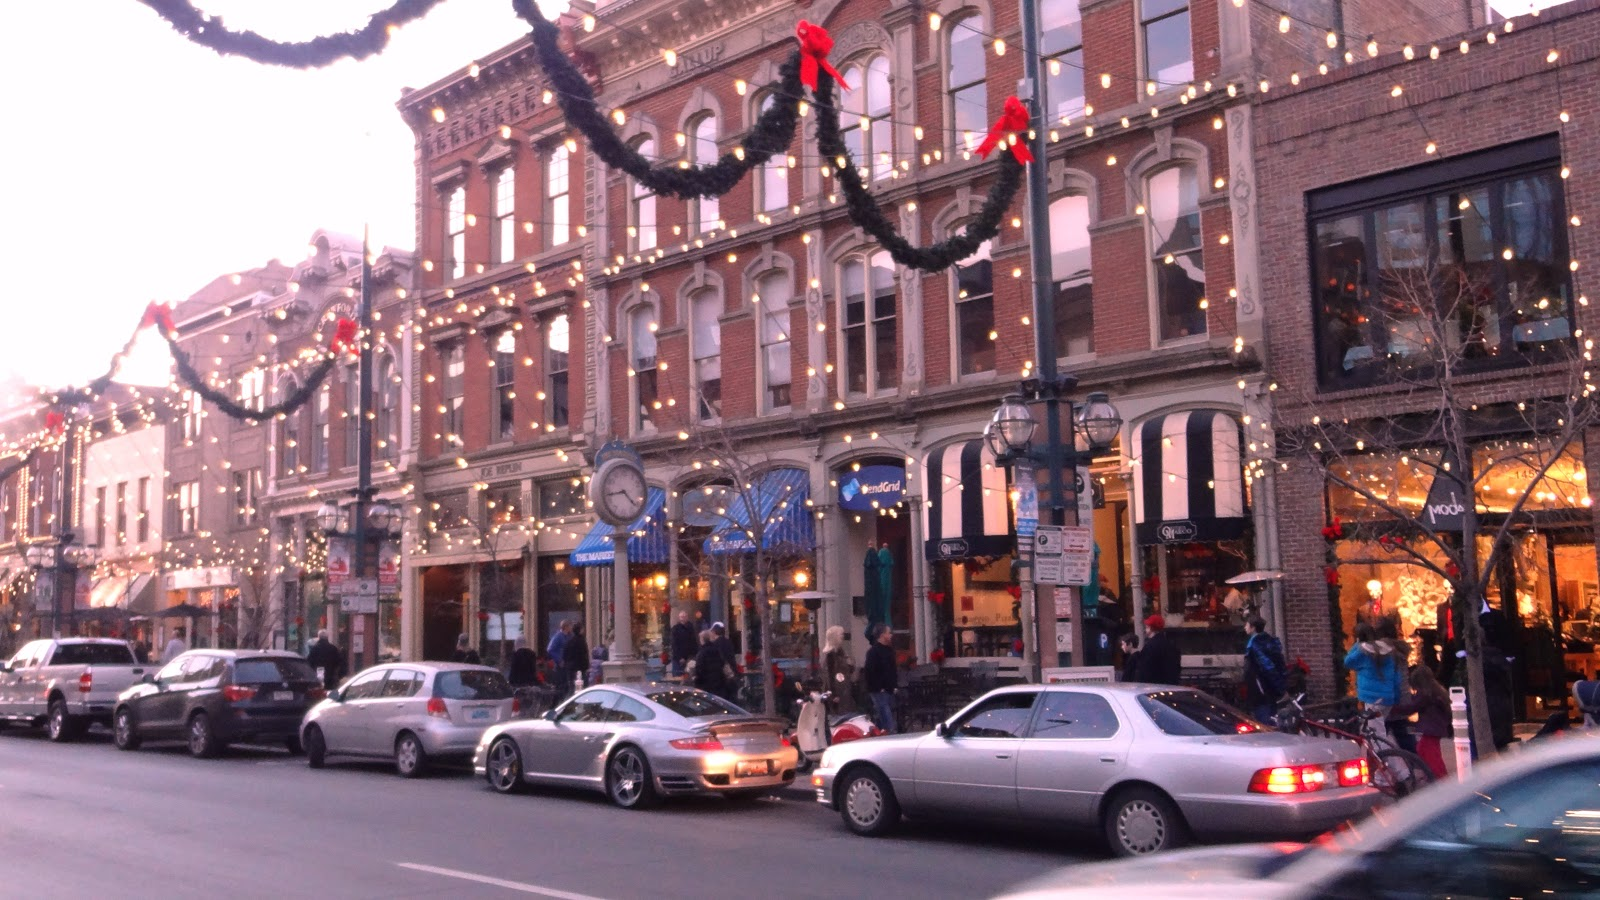 16th Street Denver Christmas Lights. Denver Restaurants Christmas Day ...